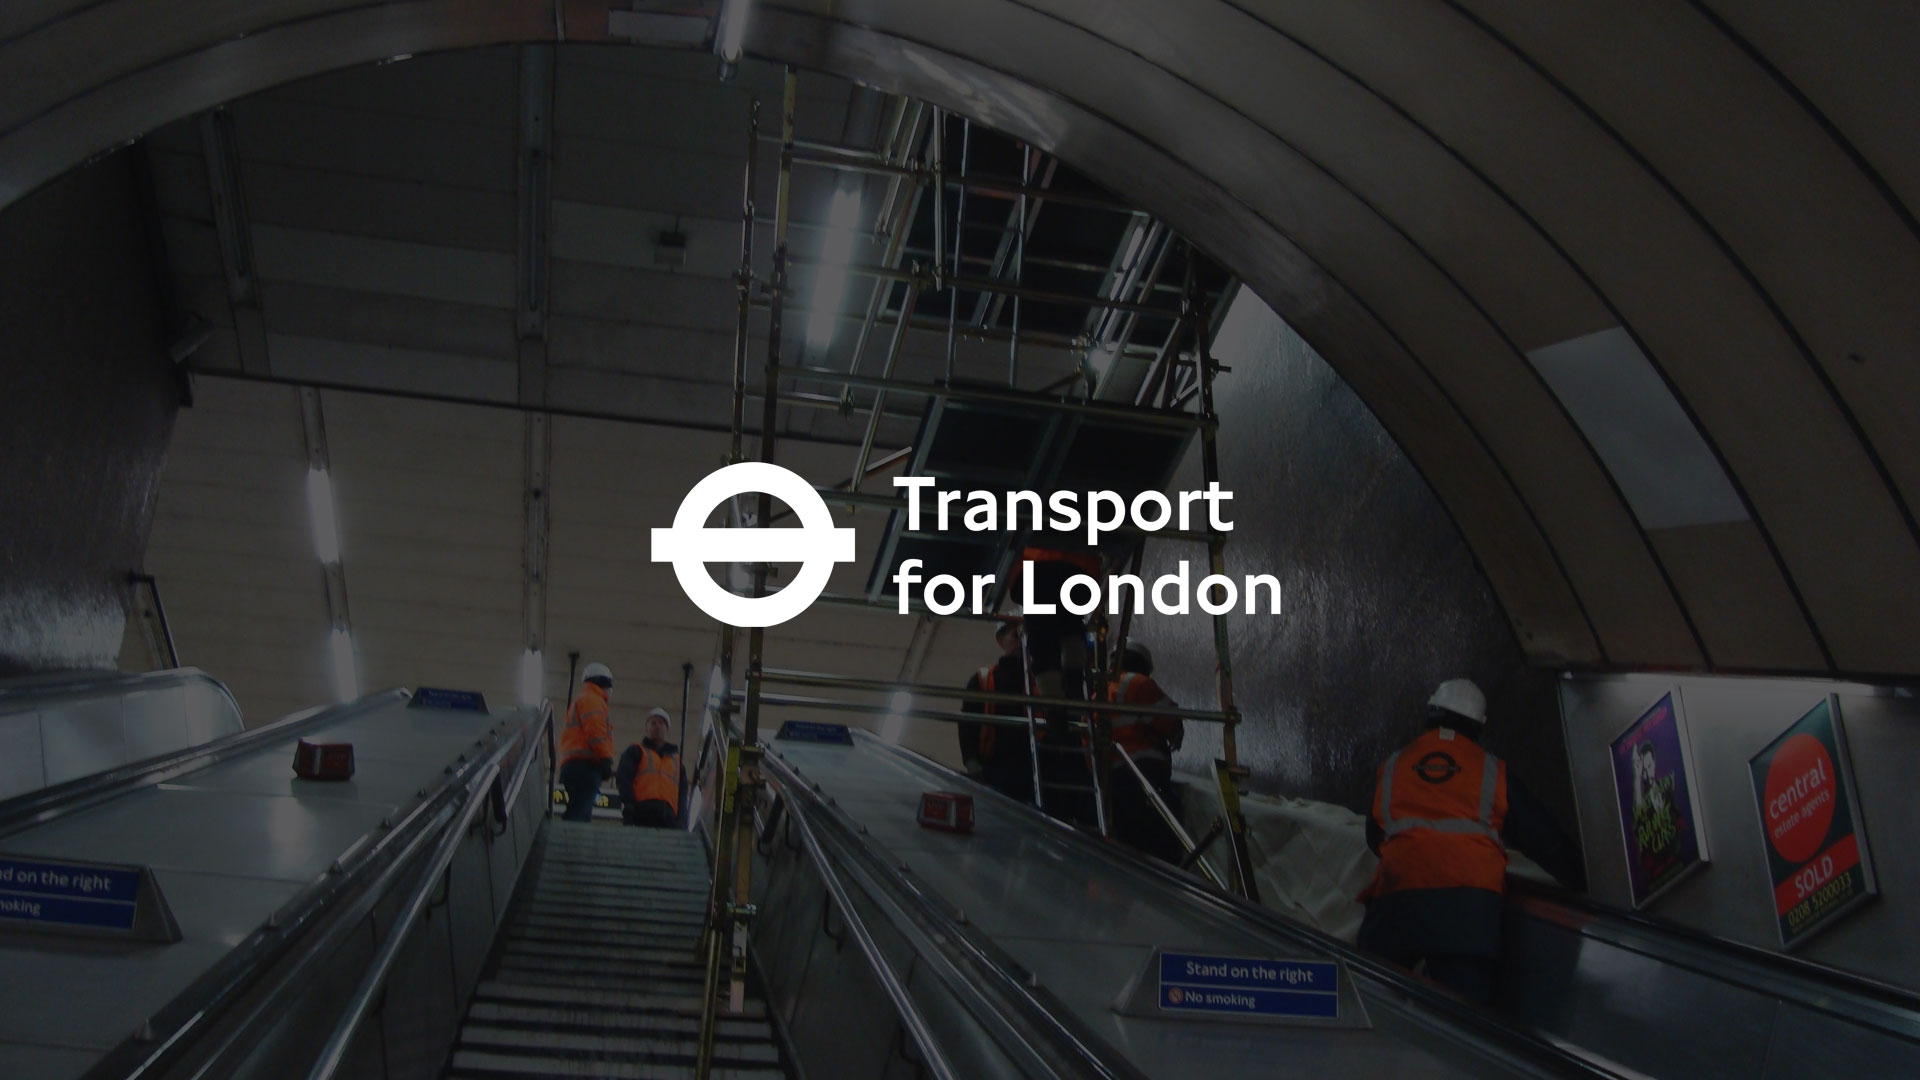 Transport for London: Transport